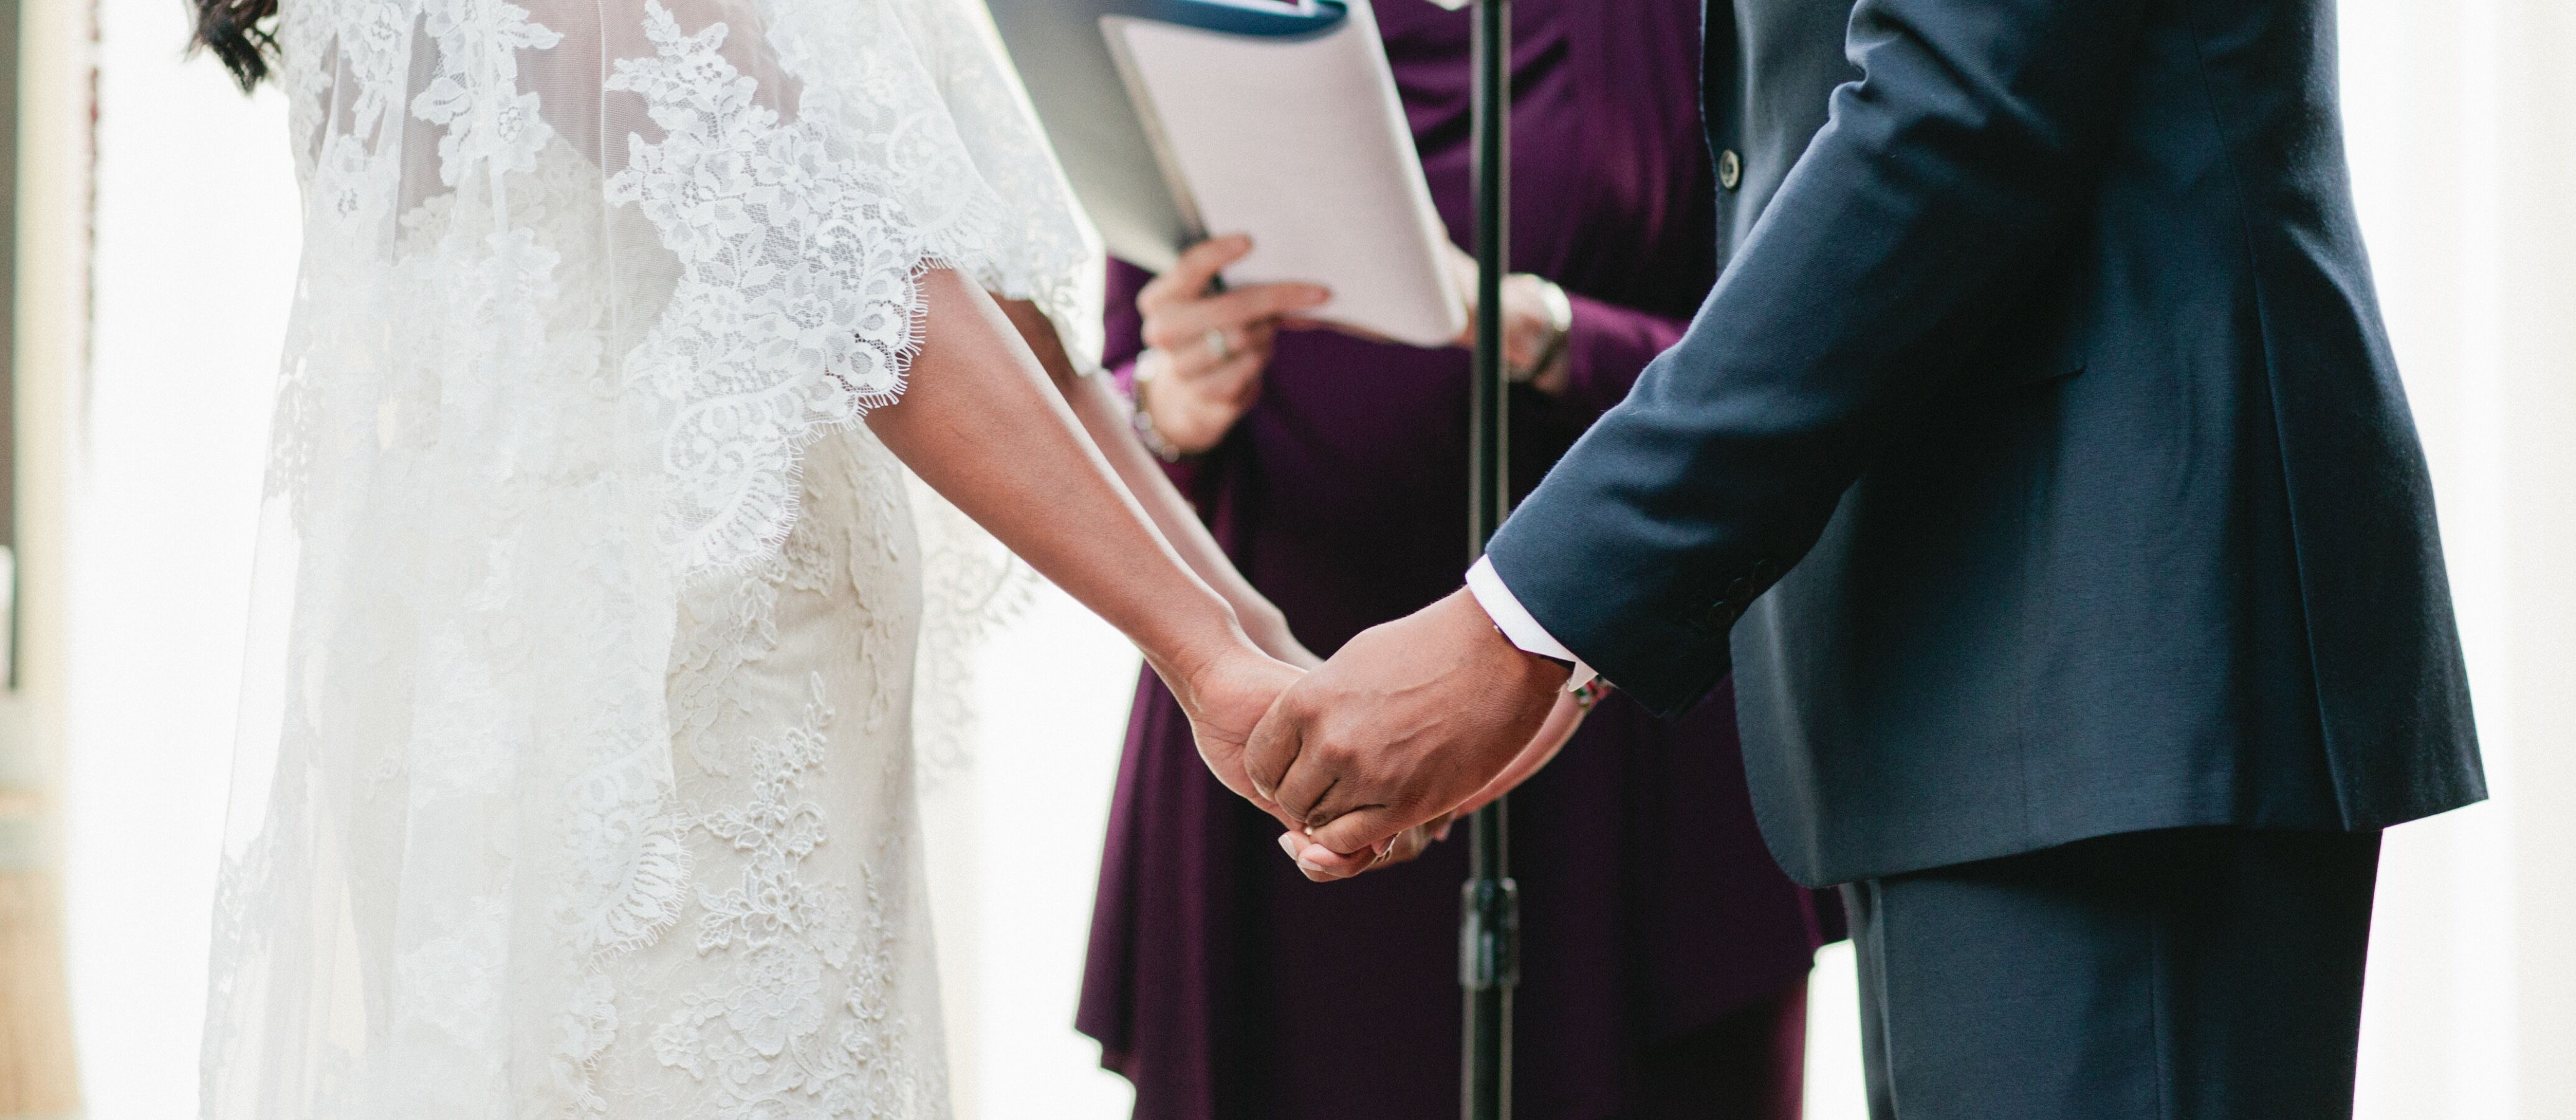 officiant + premarital counseling